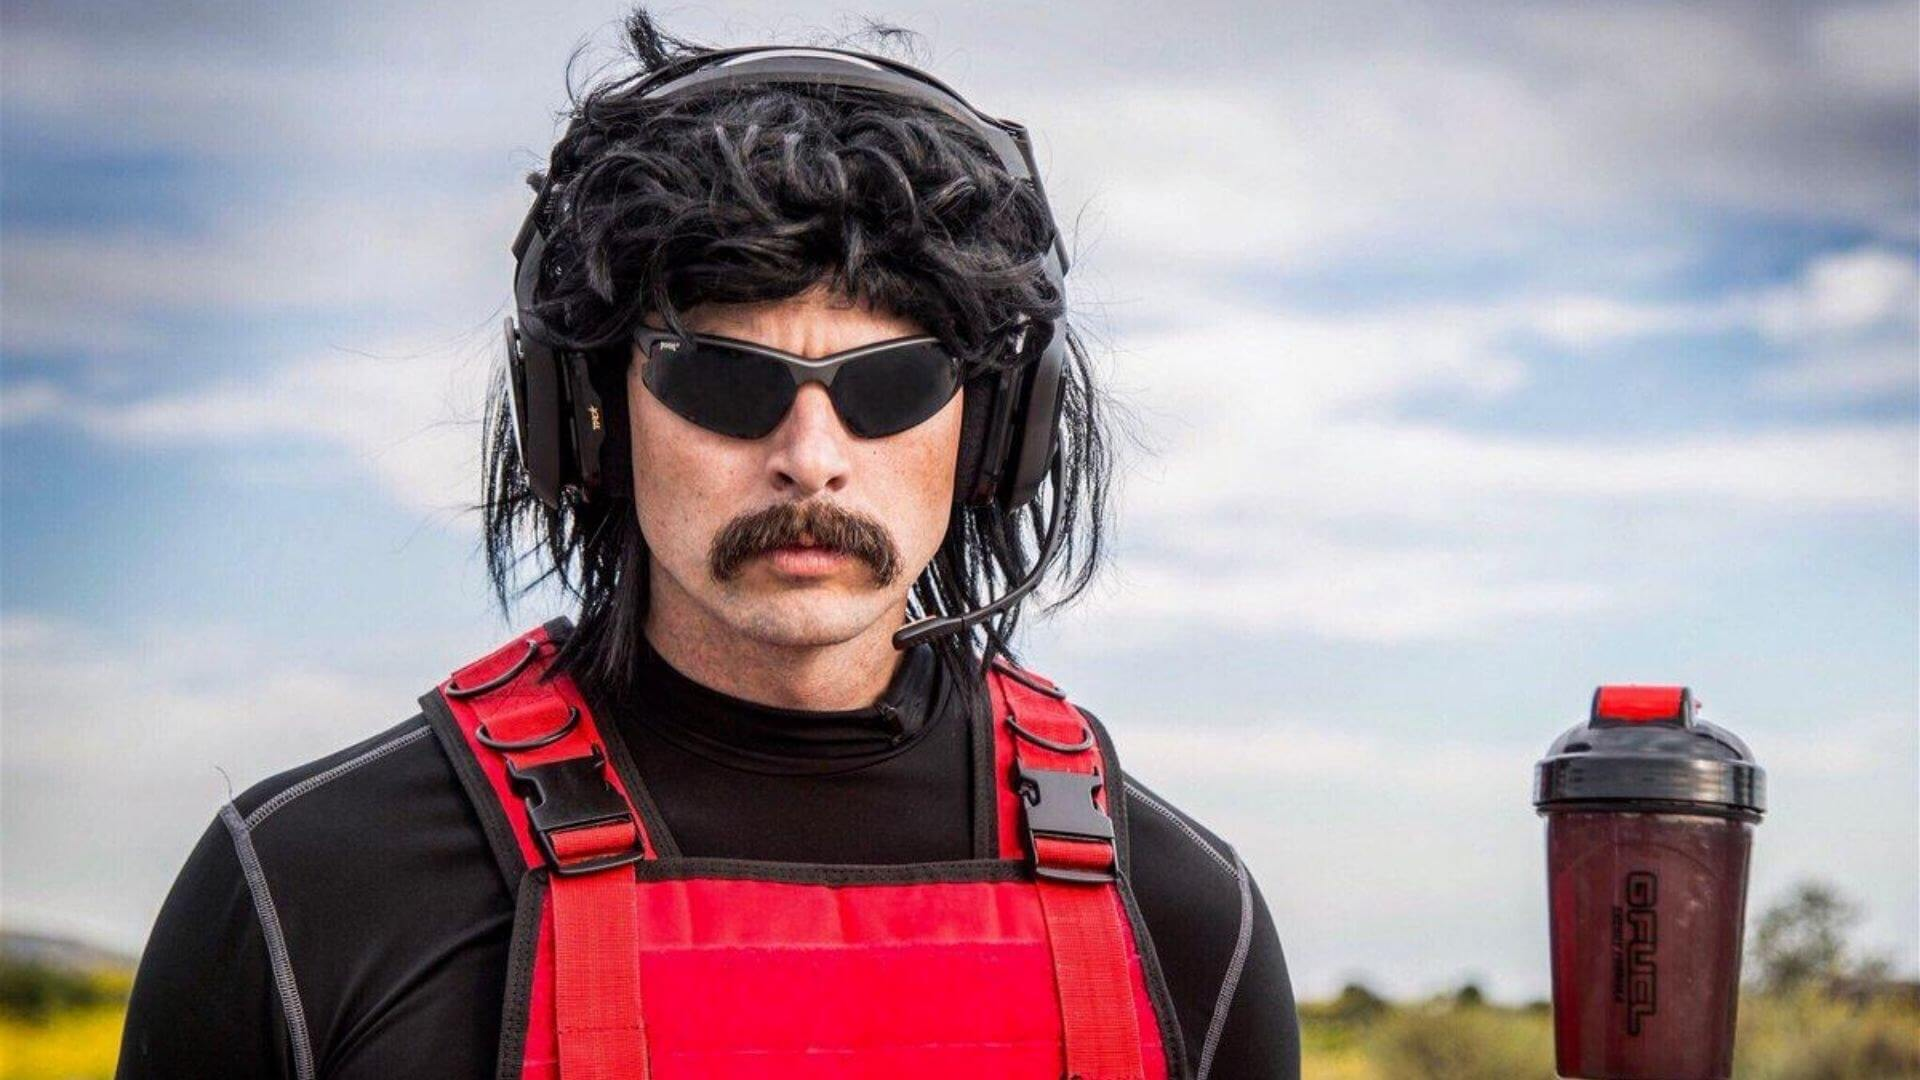 Dr Disrespect returns to streaming later today